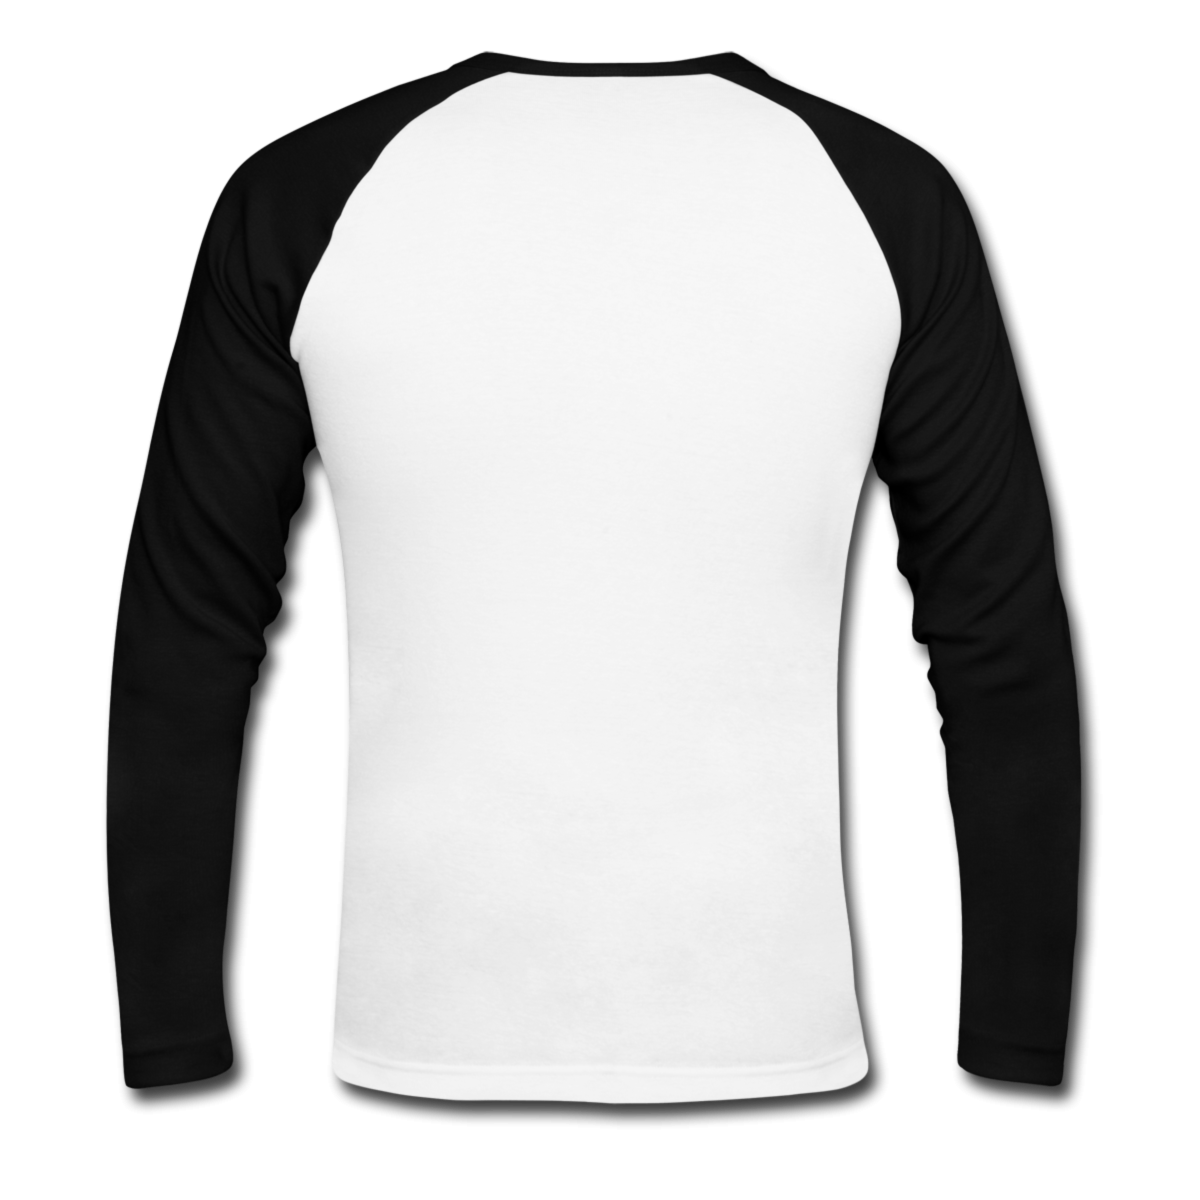 Blank silhouette at getdrawings. Clipart designs t shirt